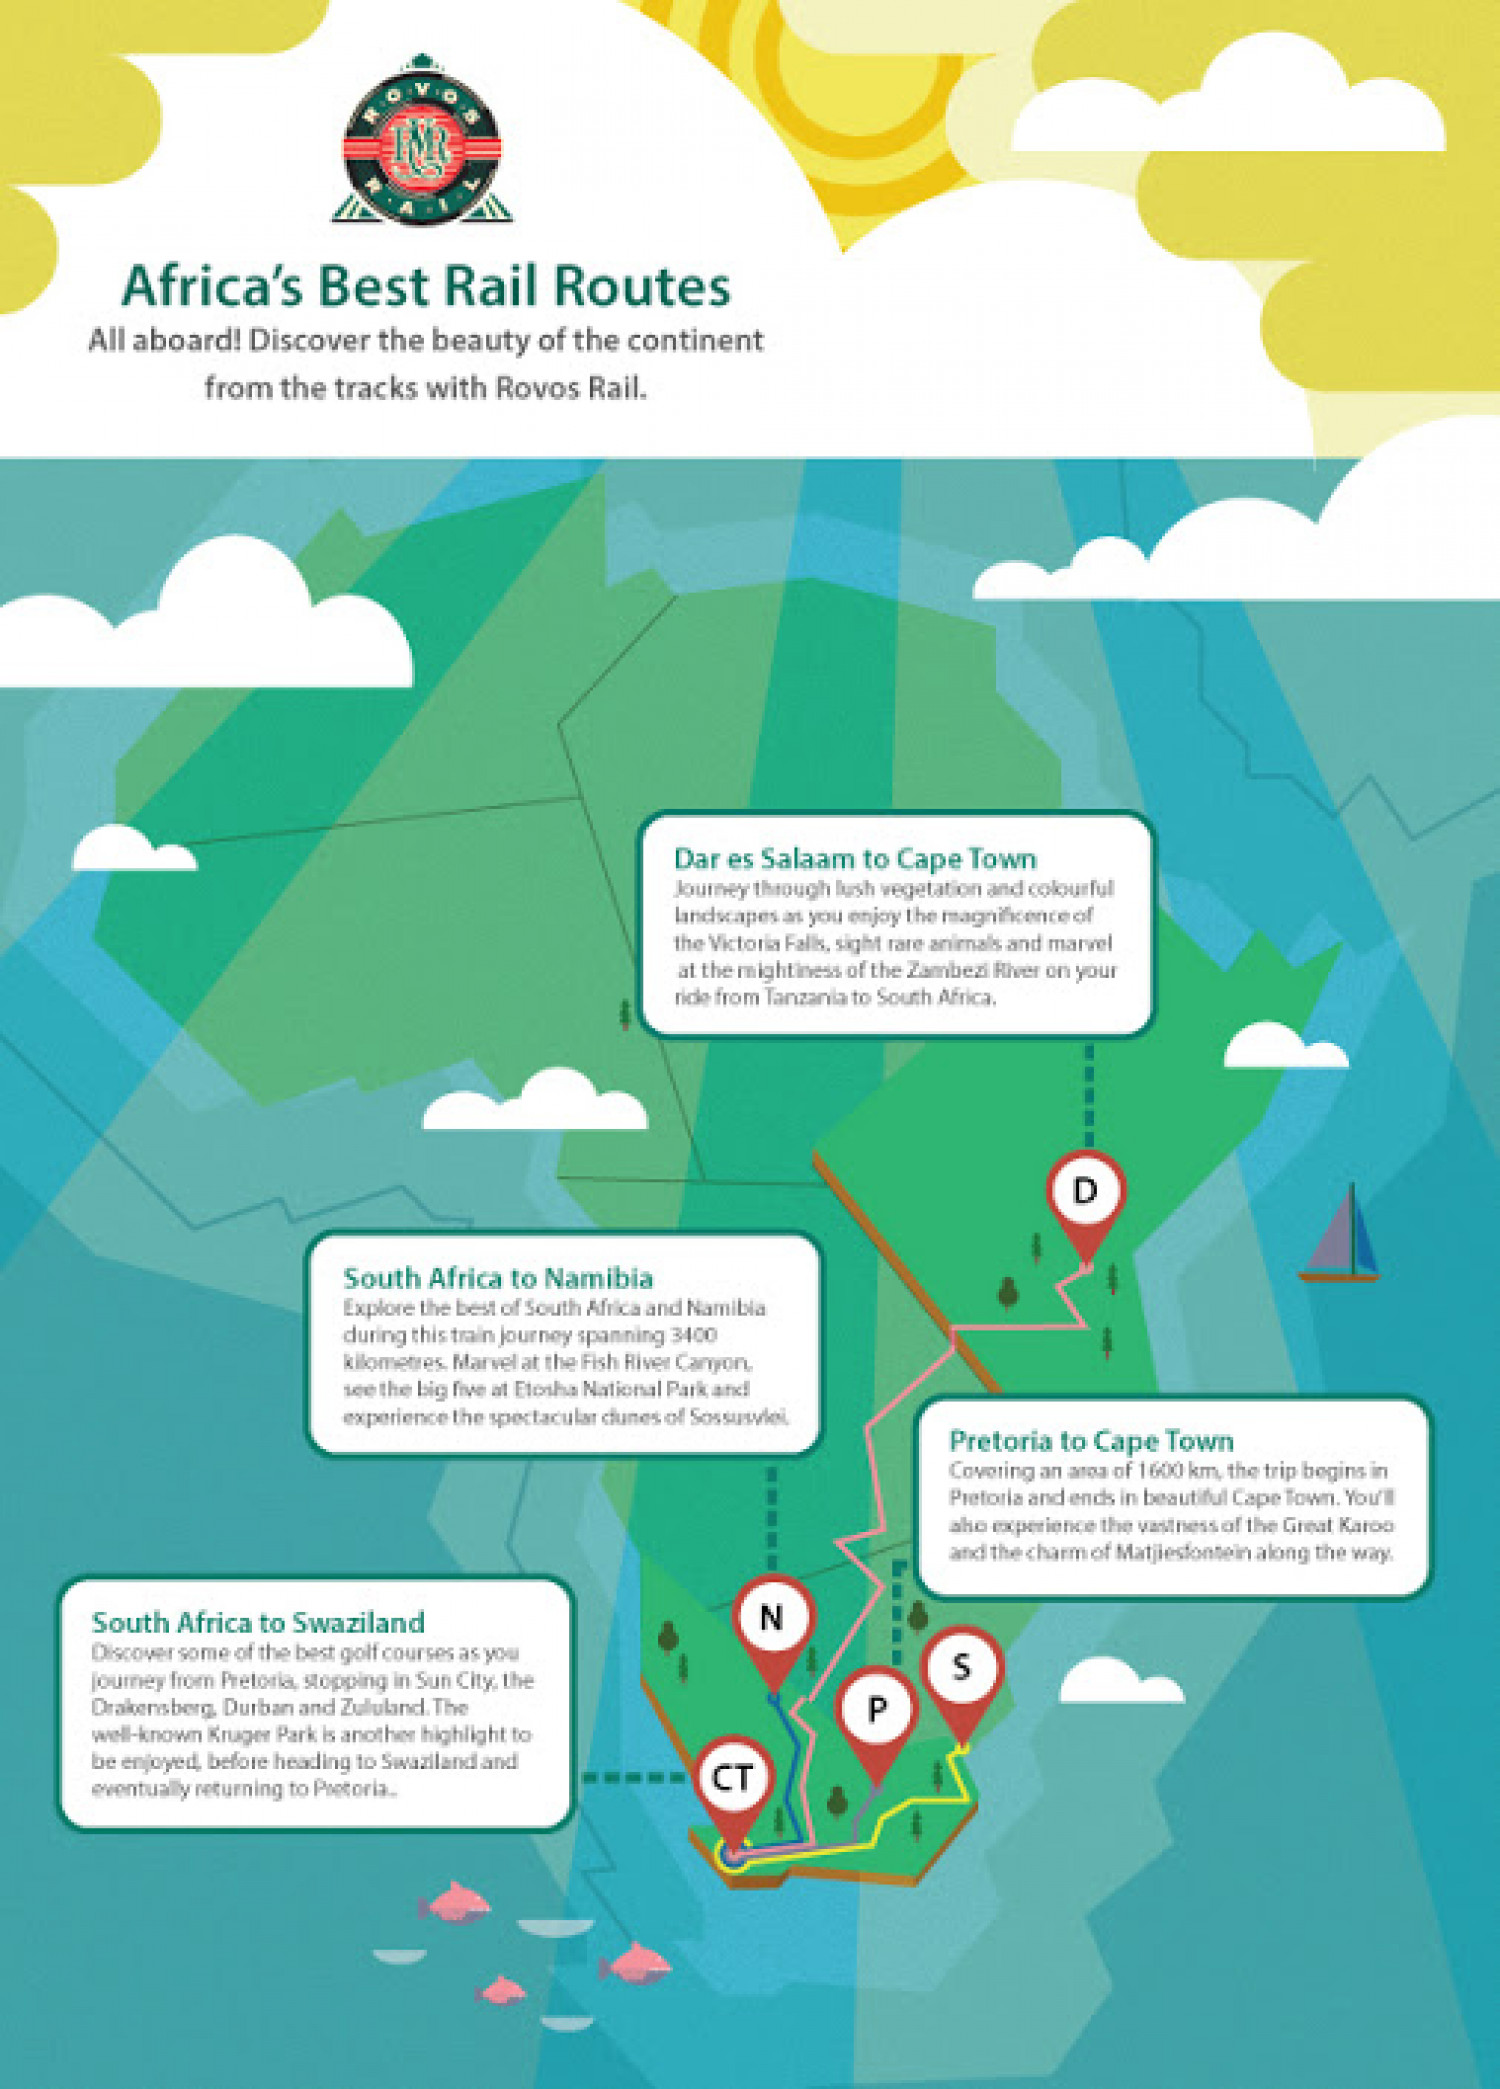 Africa's Best Rail Routes Infographic